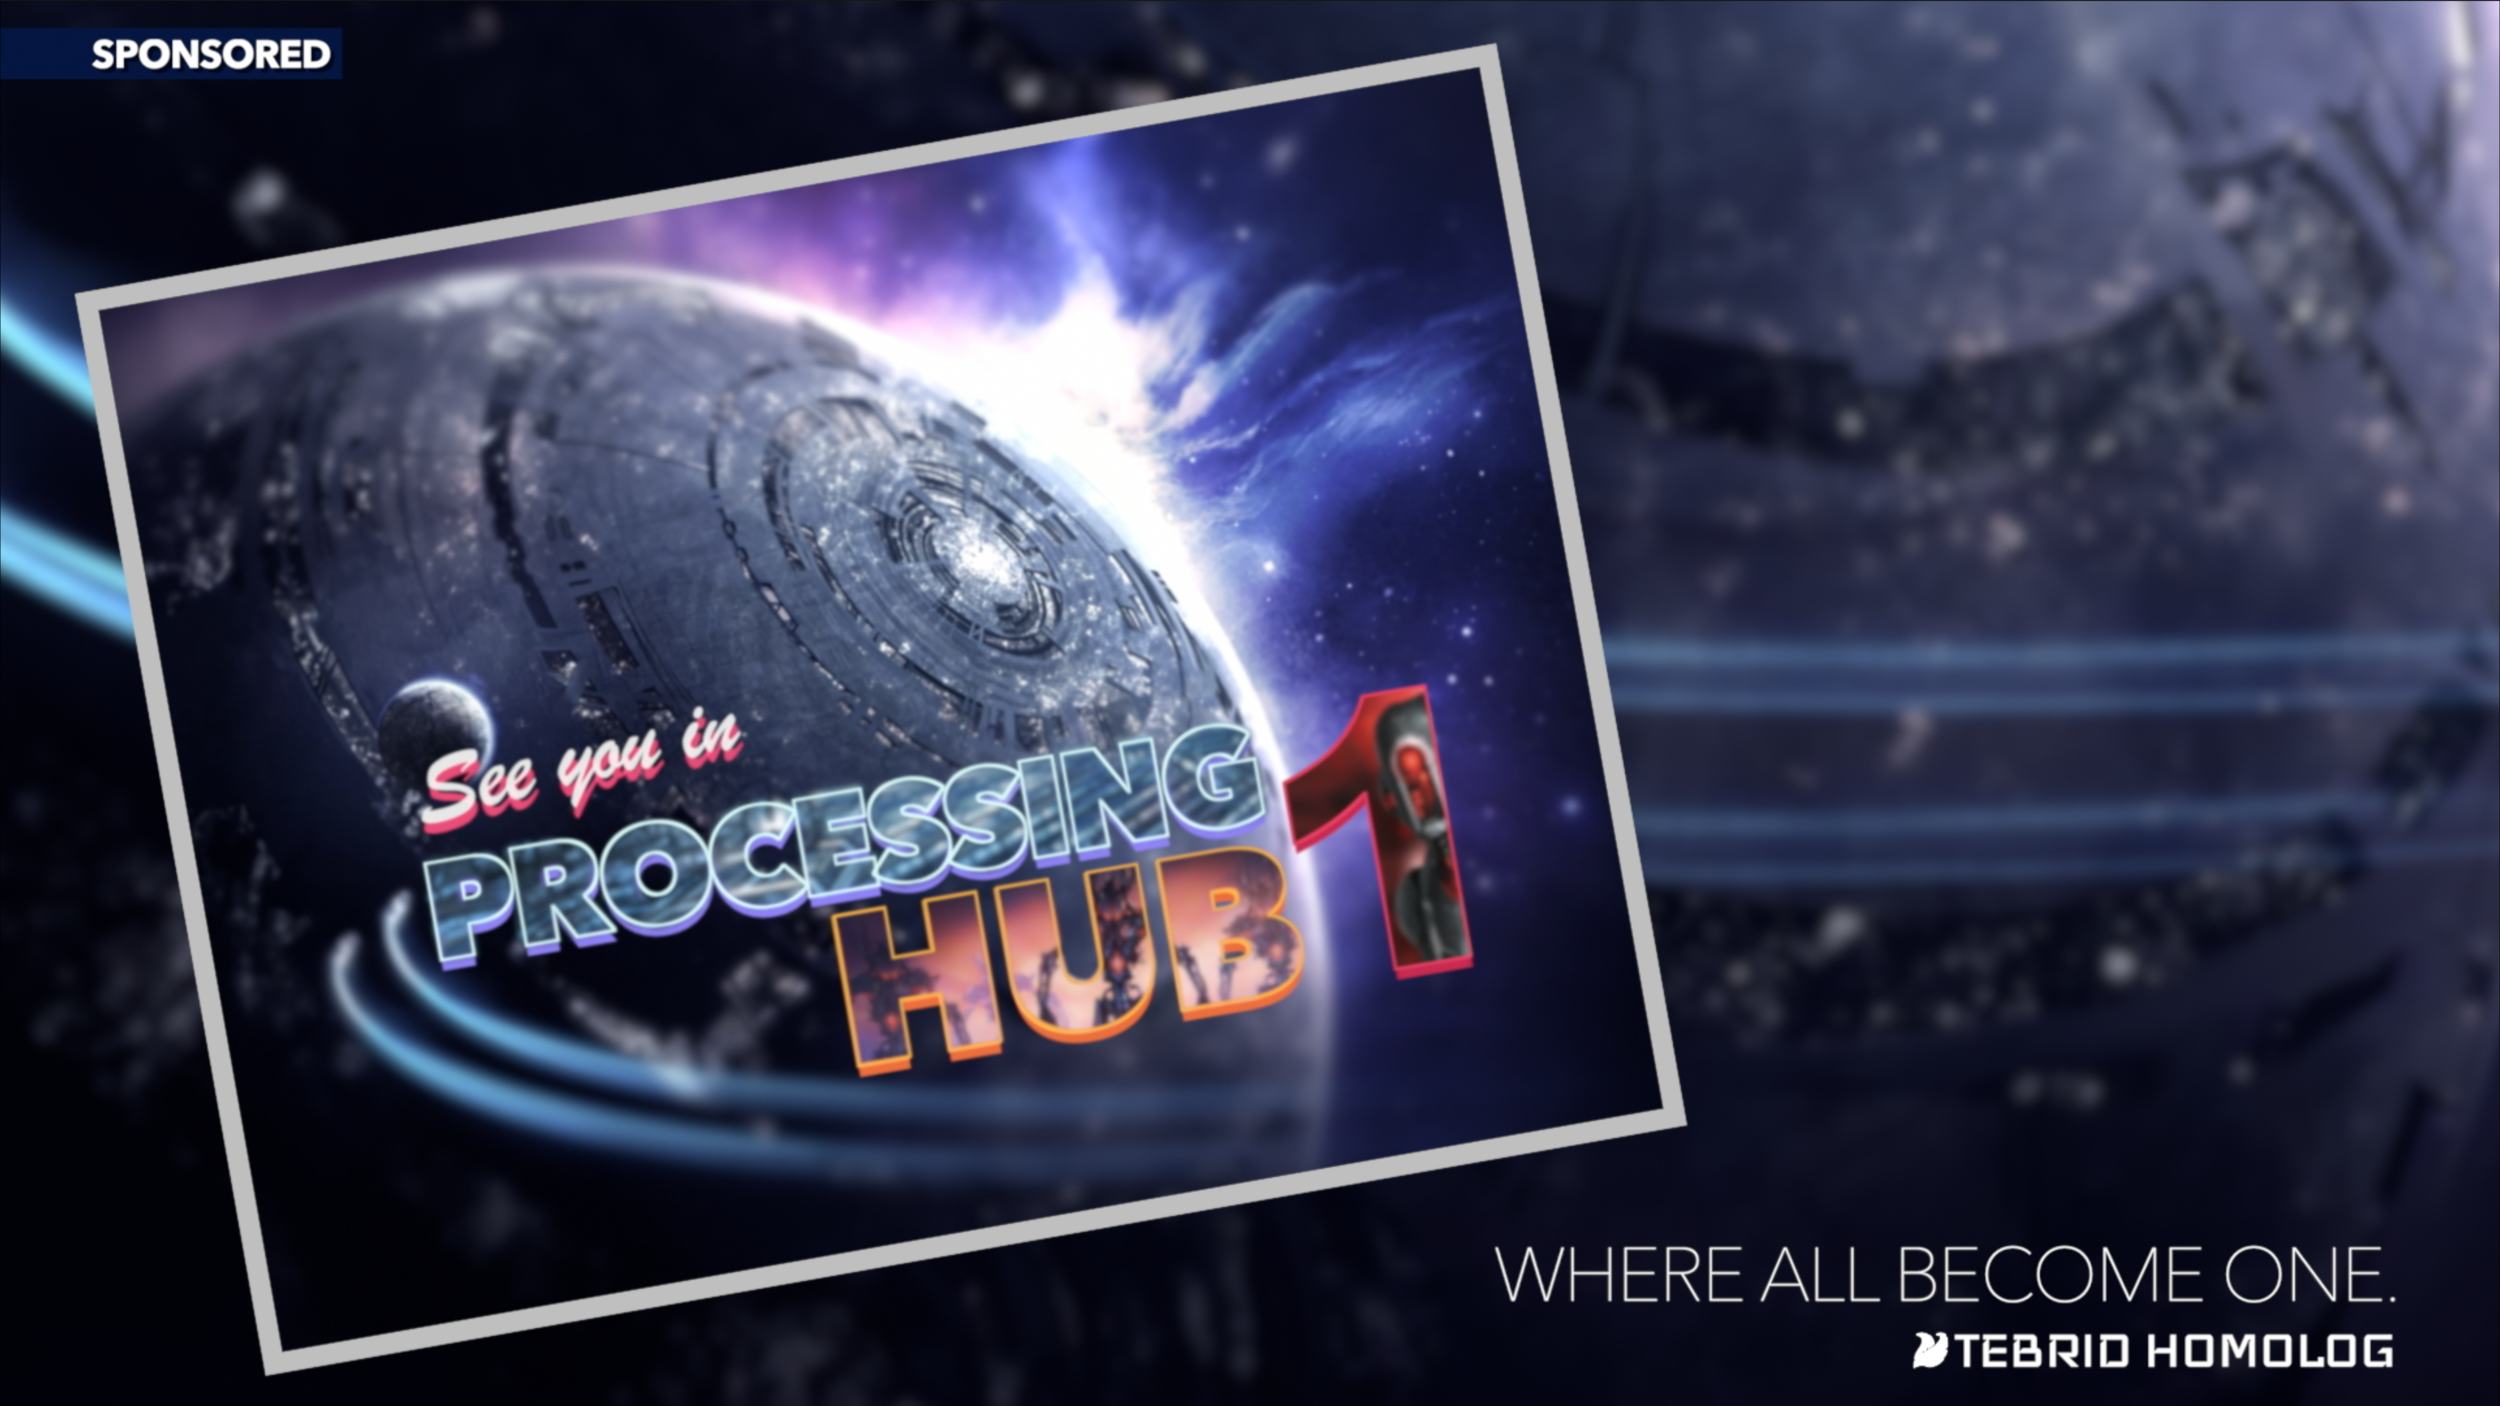 I - Commercial, See You In Processing Hub 1.png